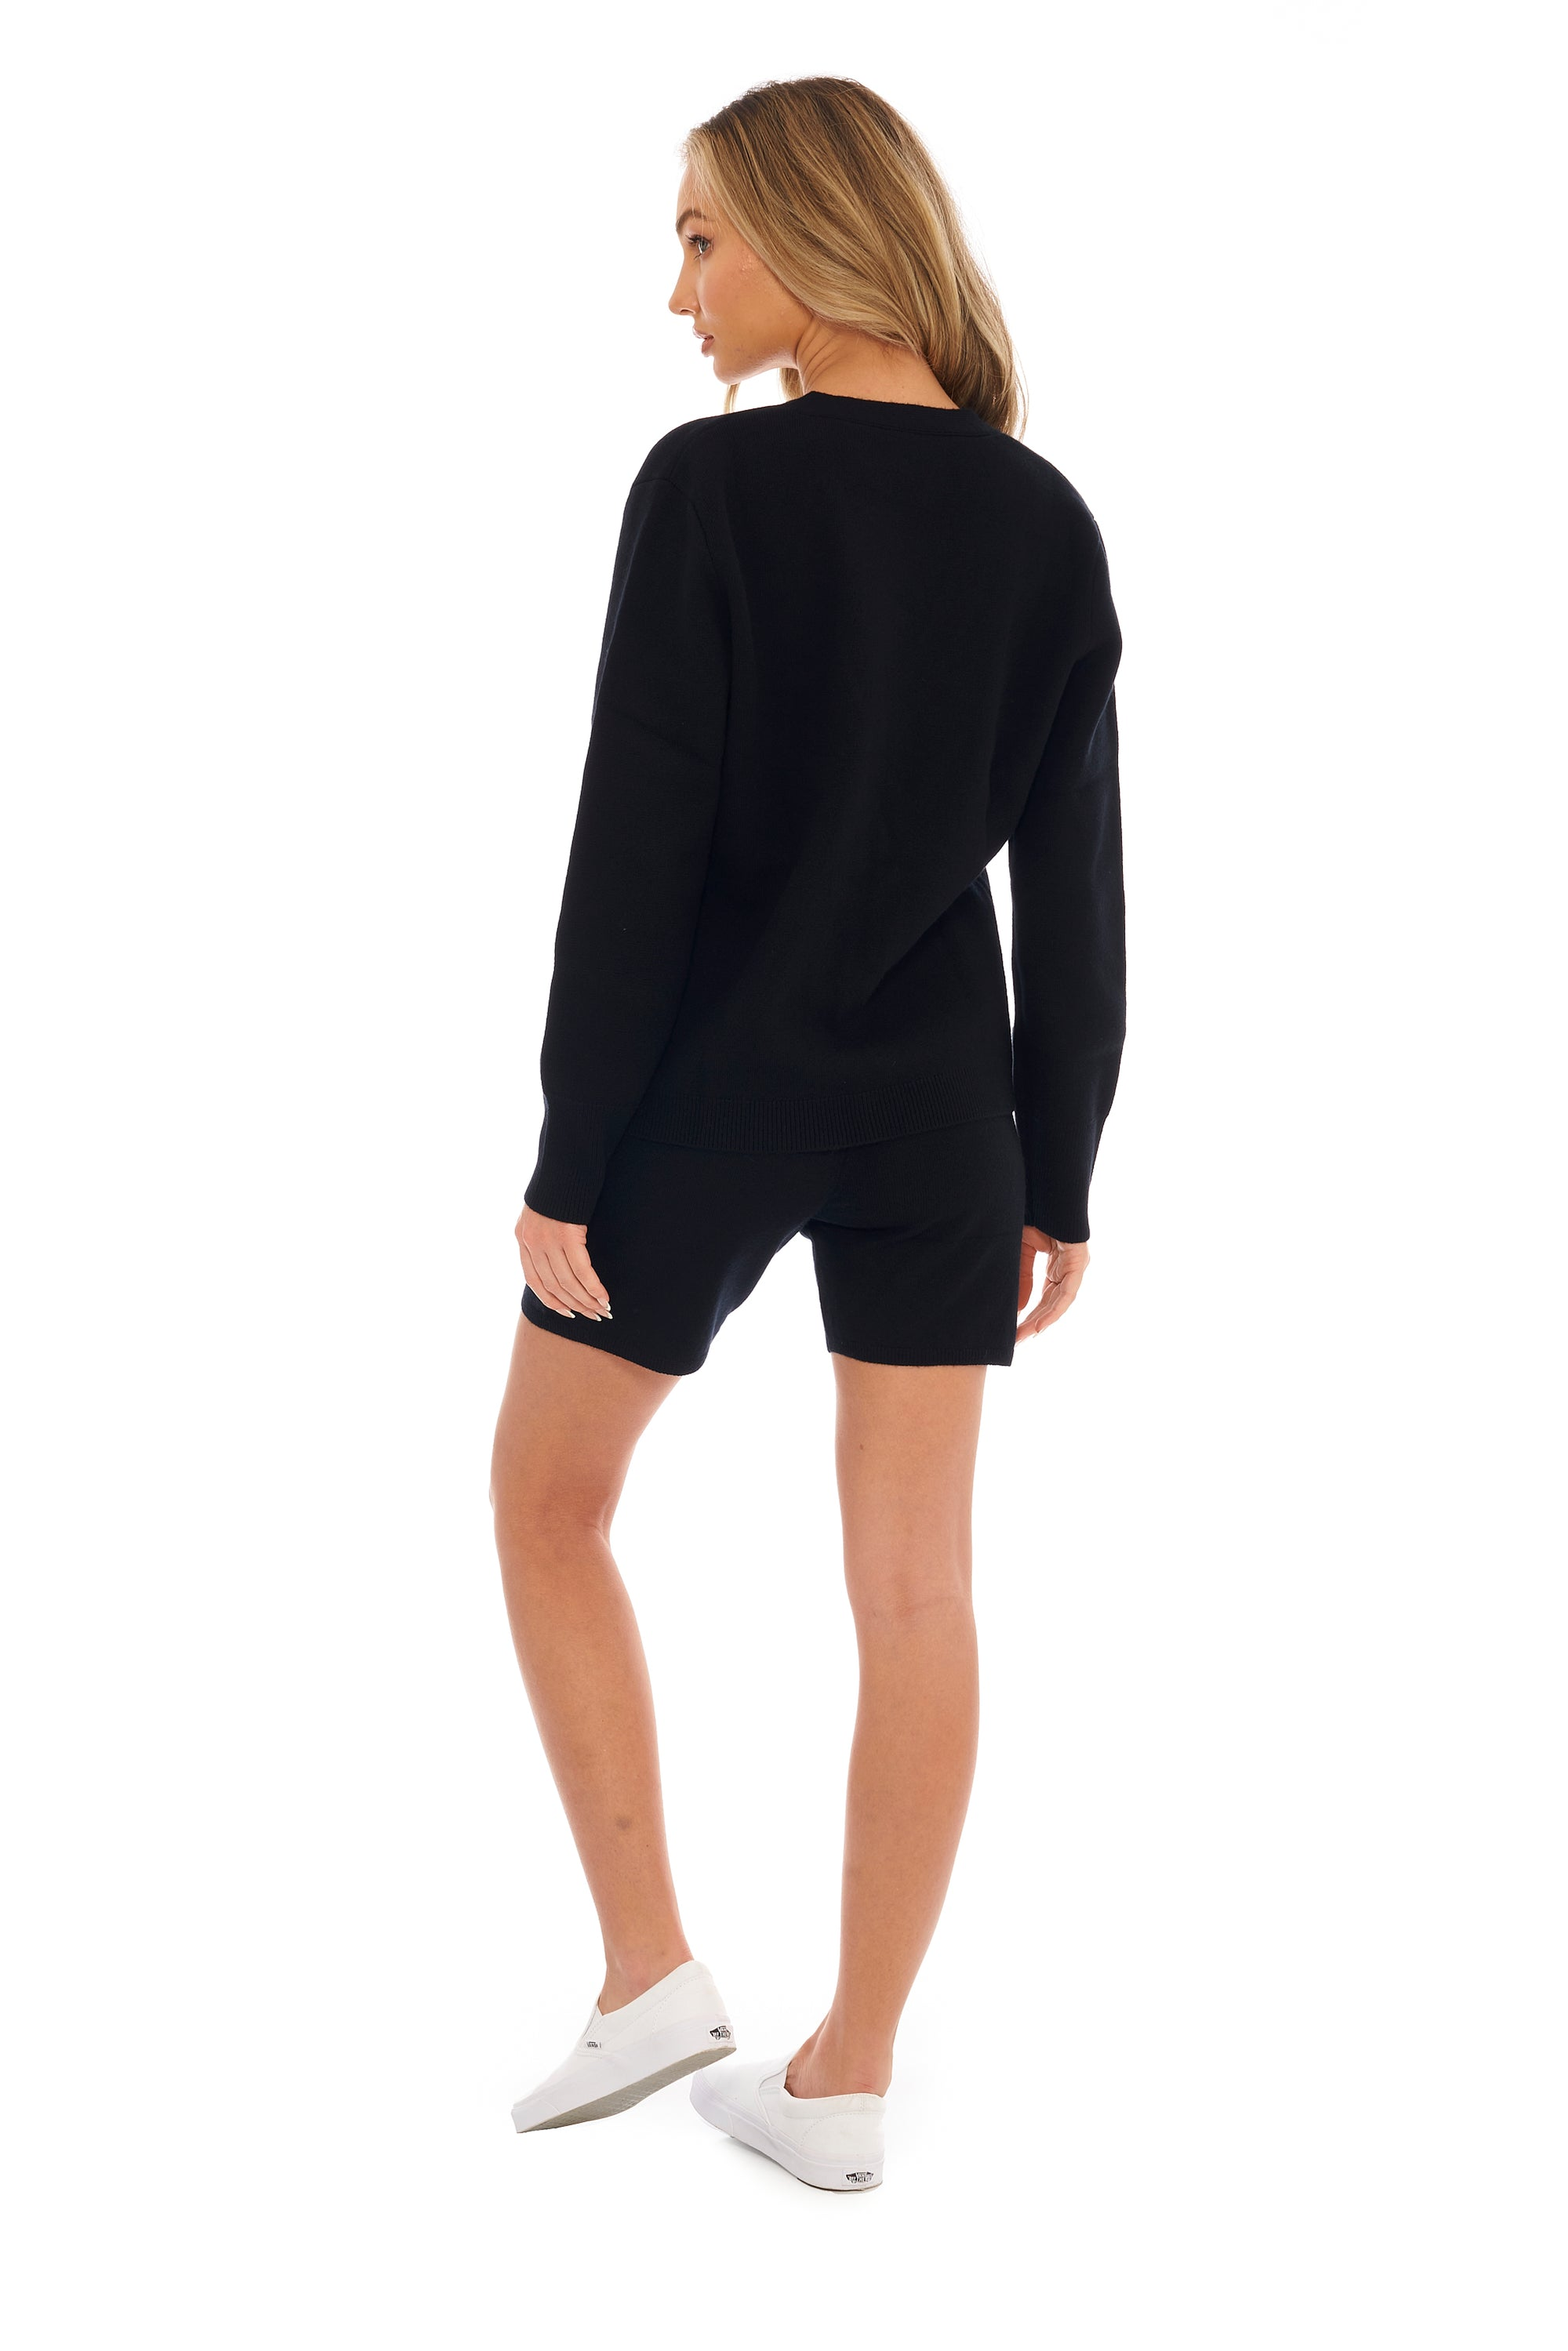 Ink Black Cashmere Biker Short